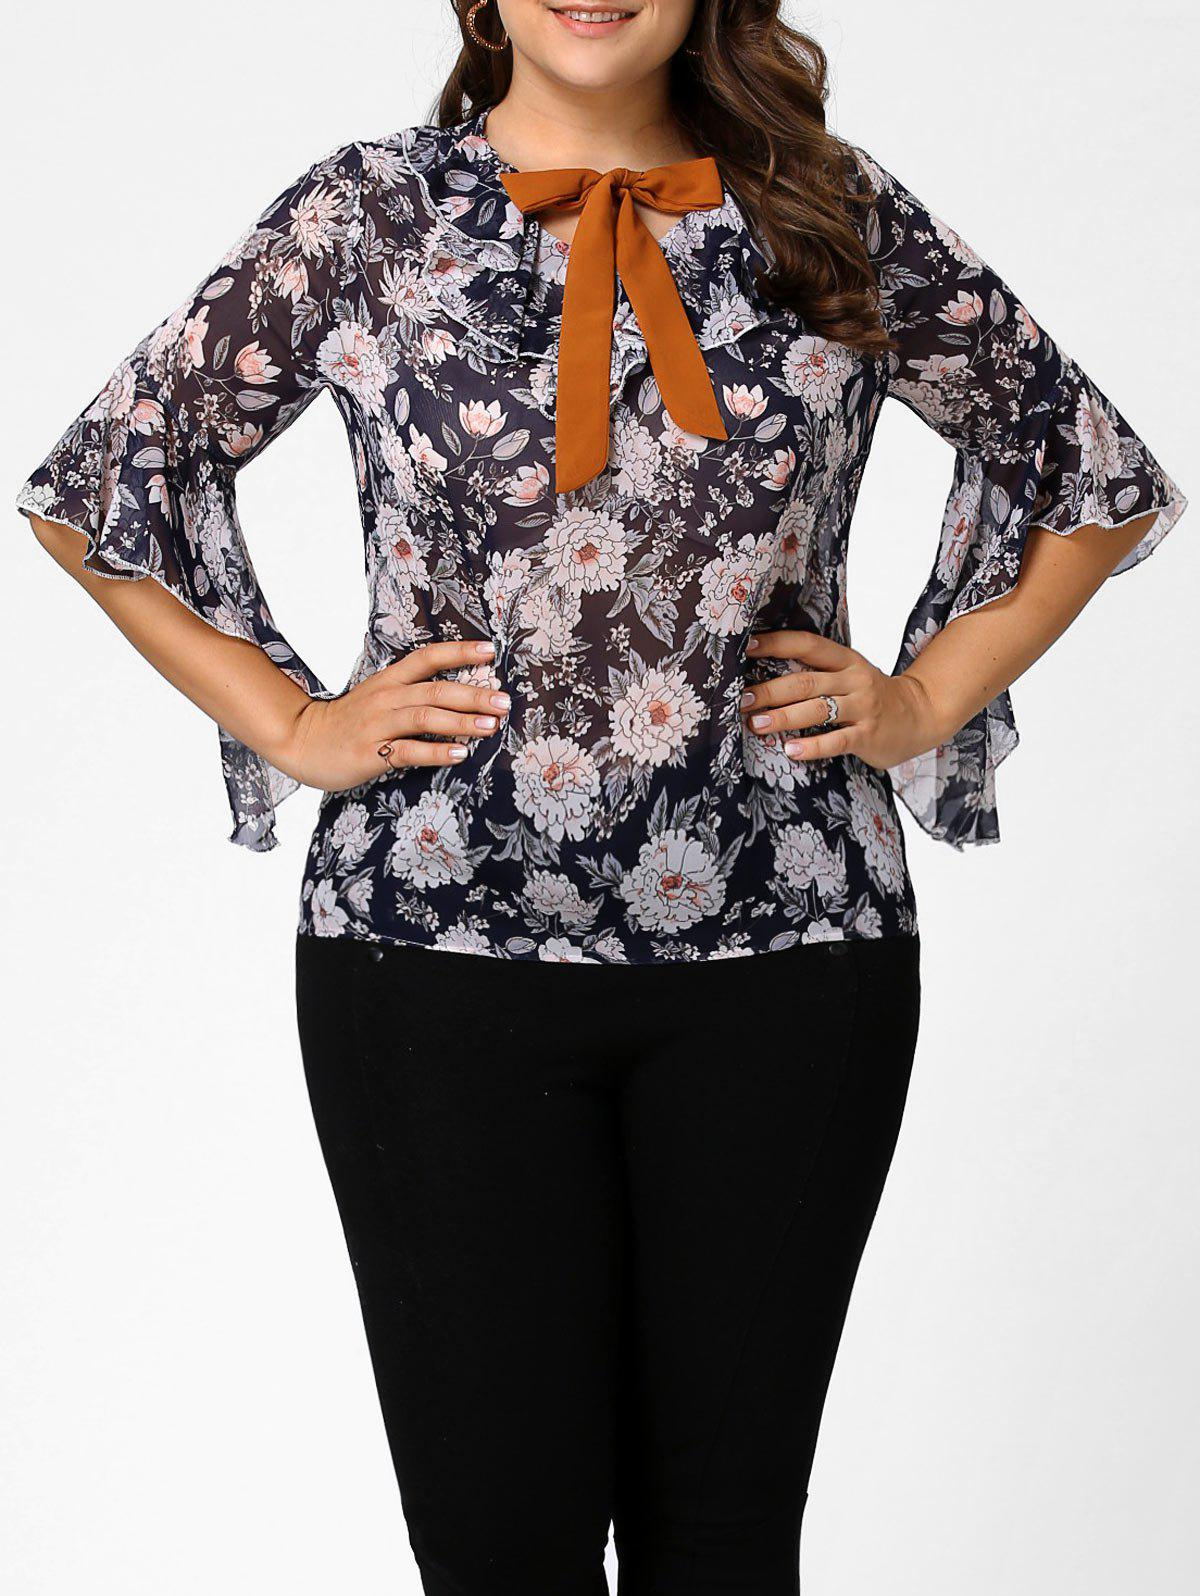 Plus Size Floral Chiffon Ruffle Pussy Bow Top plus size lipstick printed pussy bow chiffon shirt dress